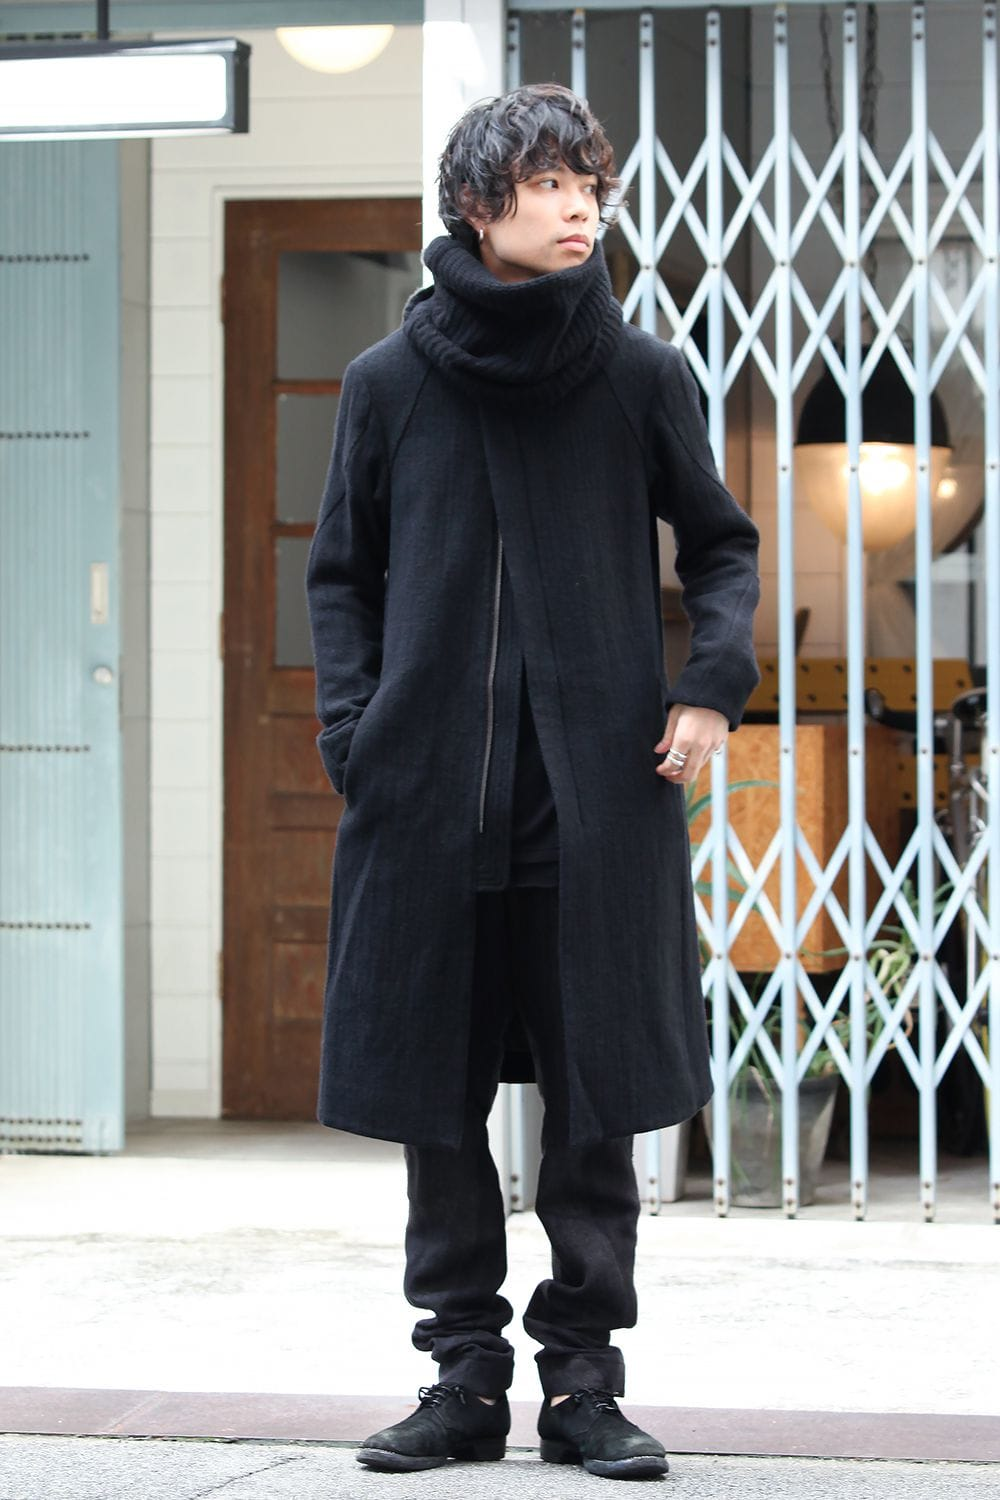 DEVOA Over Sized Hooded Down Coat  Style - 1-002